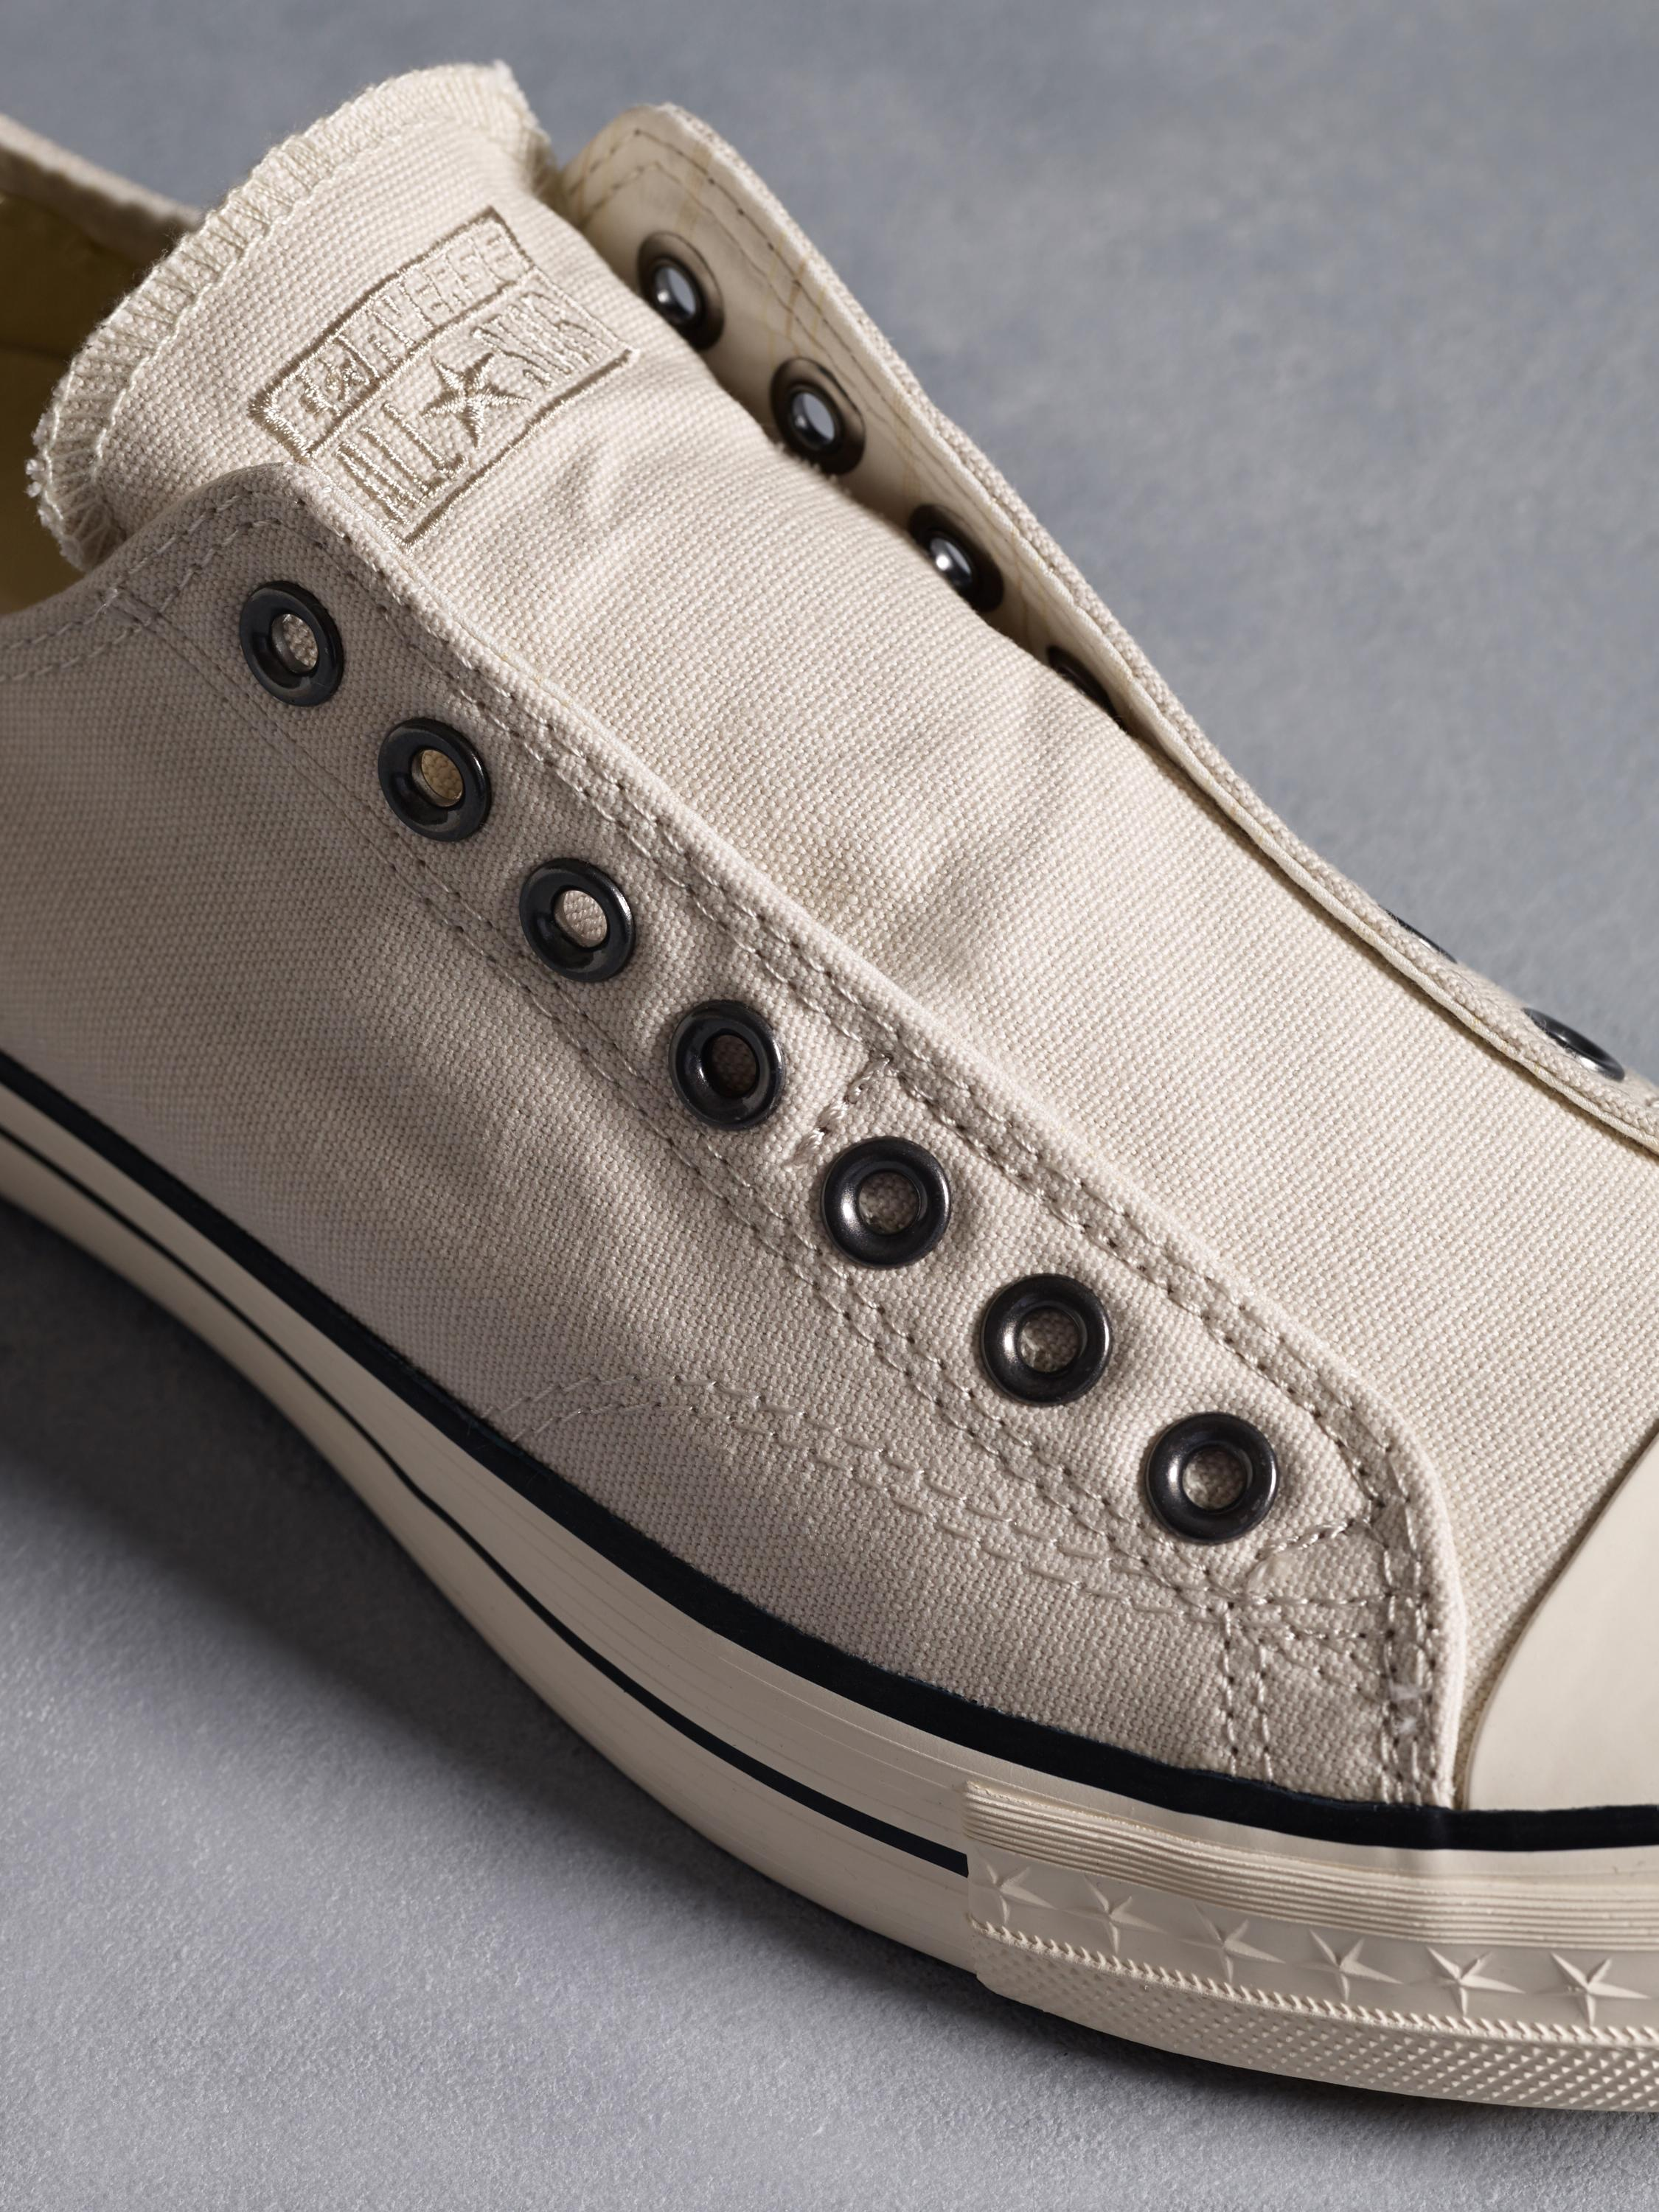 8c5b6e8c332 Chuck Taylor Laceless Low Top - John Varvatos